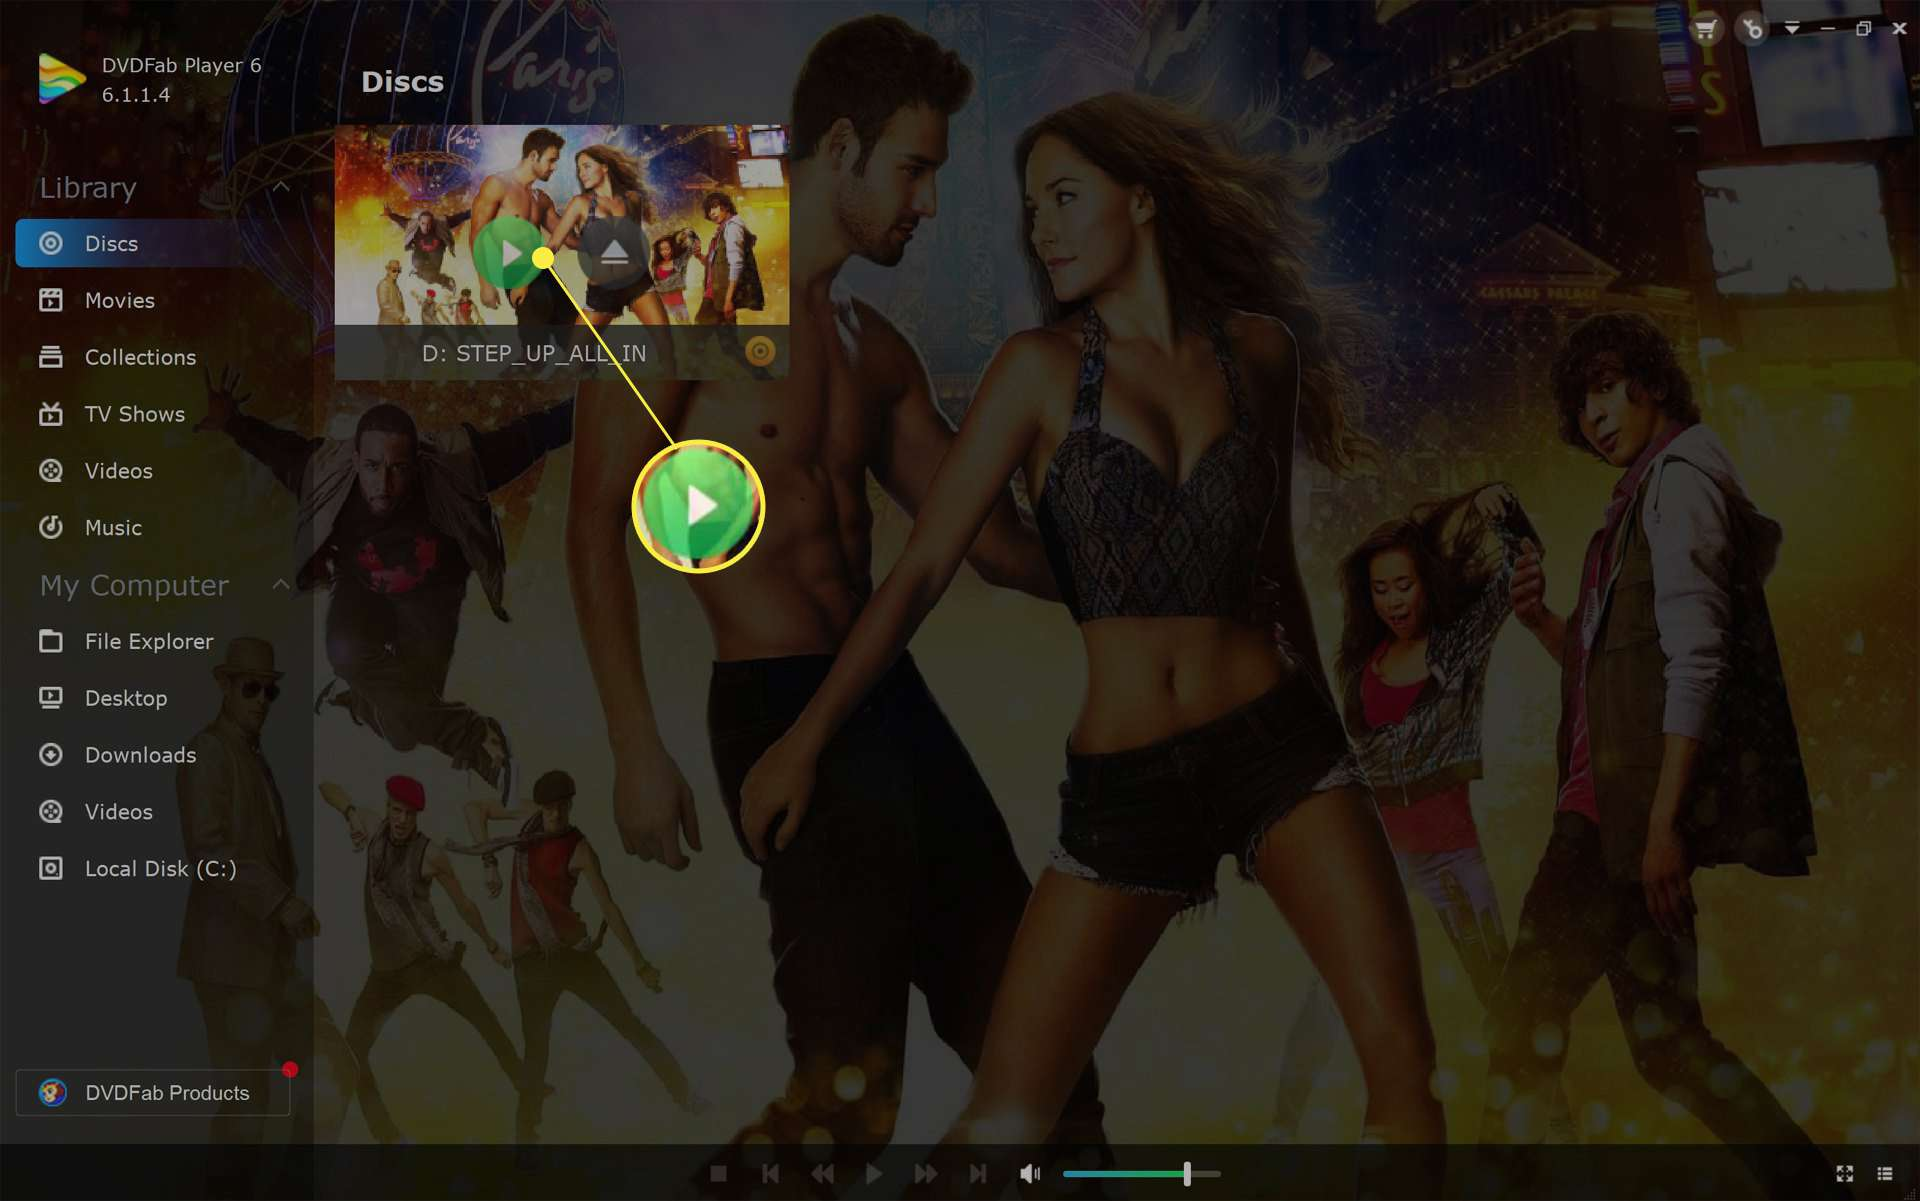 Step Up 5 movie Blu-ray in DVDFab Player app on Windows 11 with the Play button highlighted